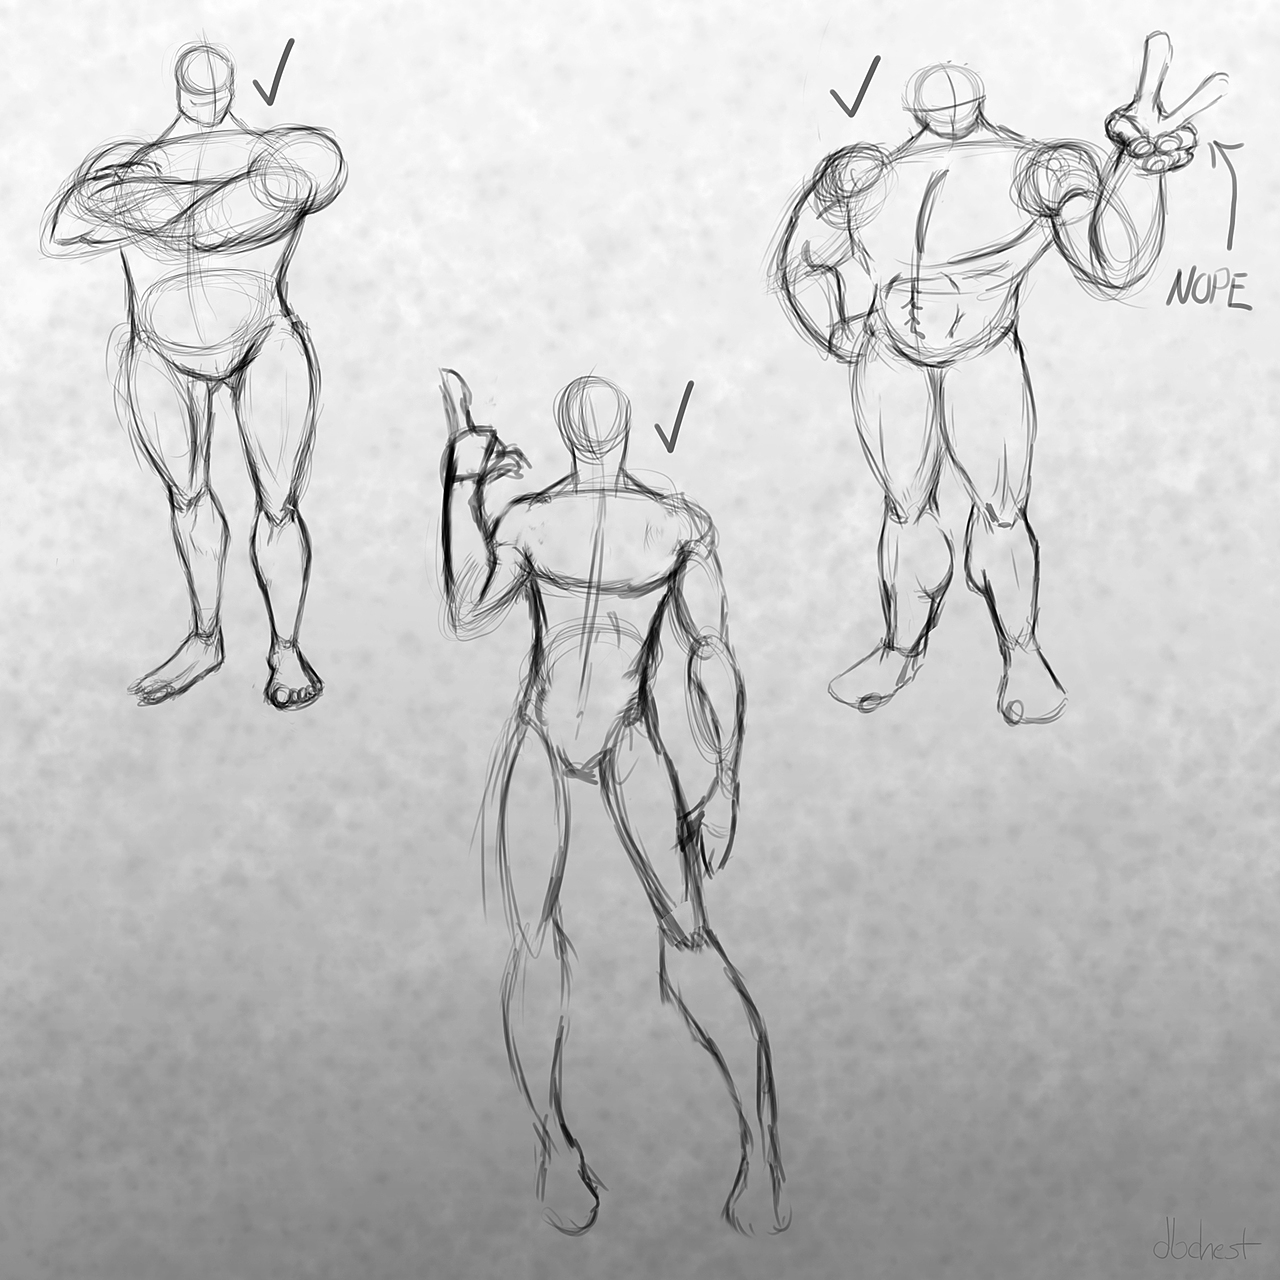 Original Concepts and Pose Studies